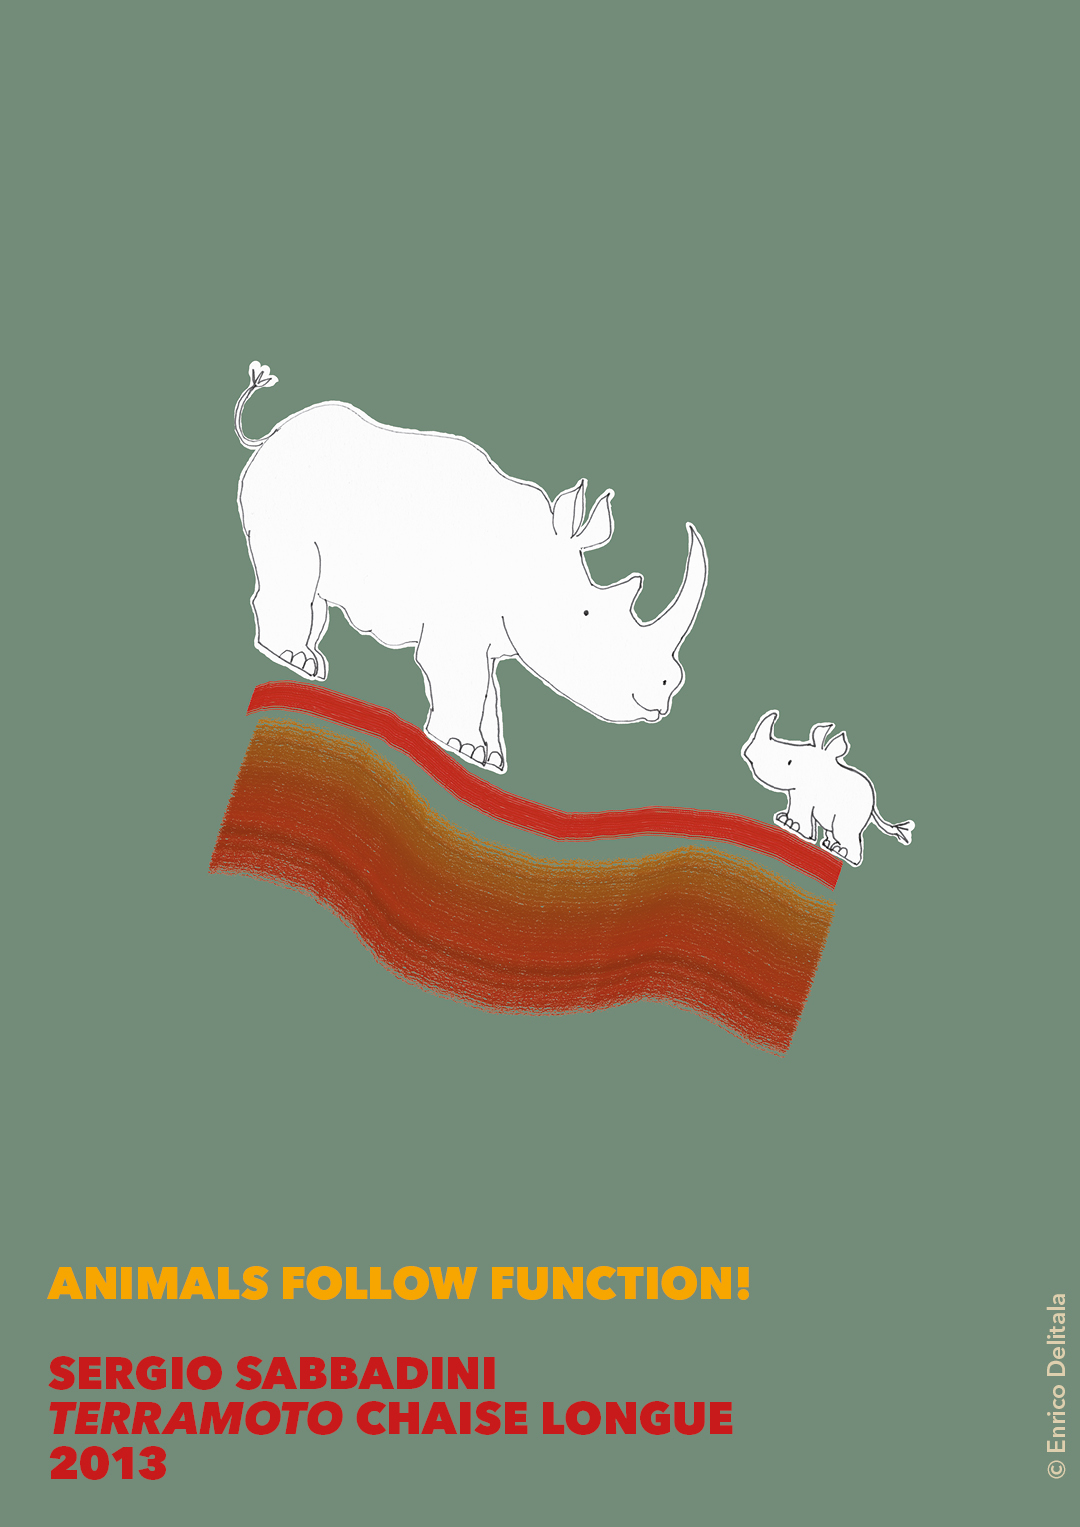 Rinoceronti: Enrico Delitala Sergio Sabbadini animals follow function form follows function